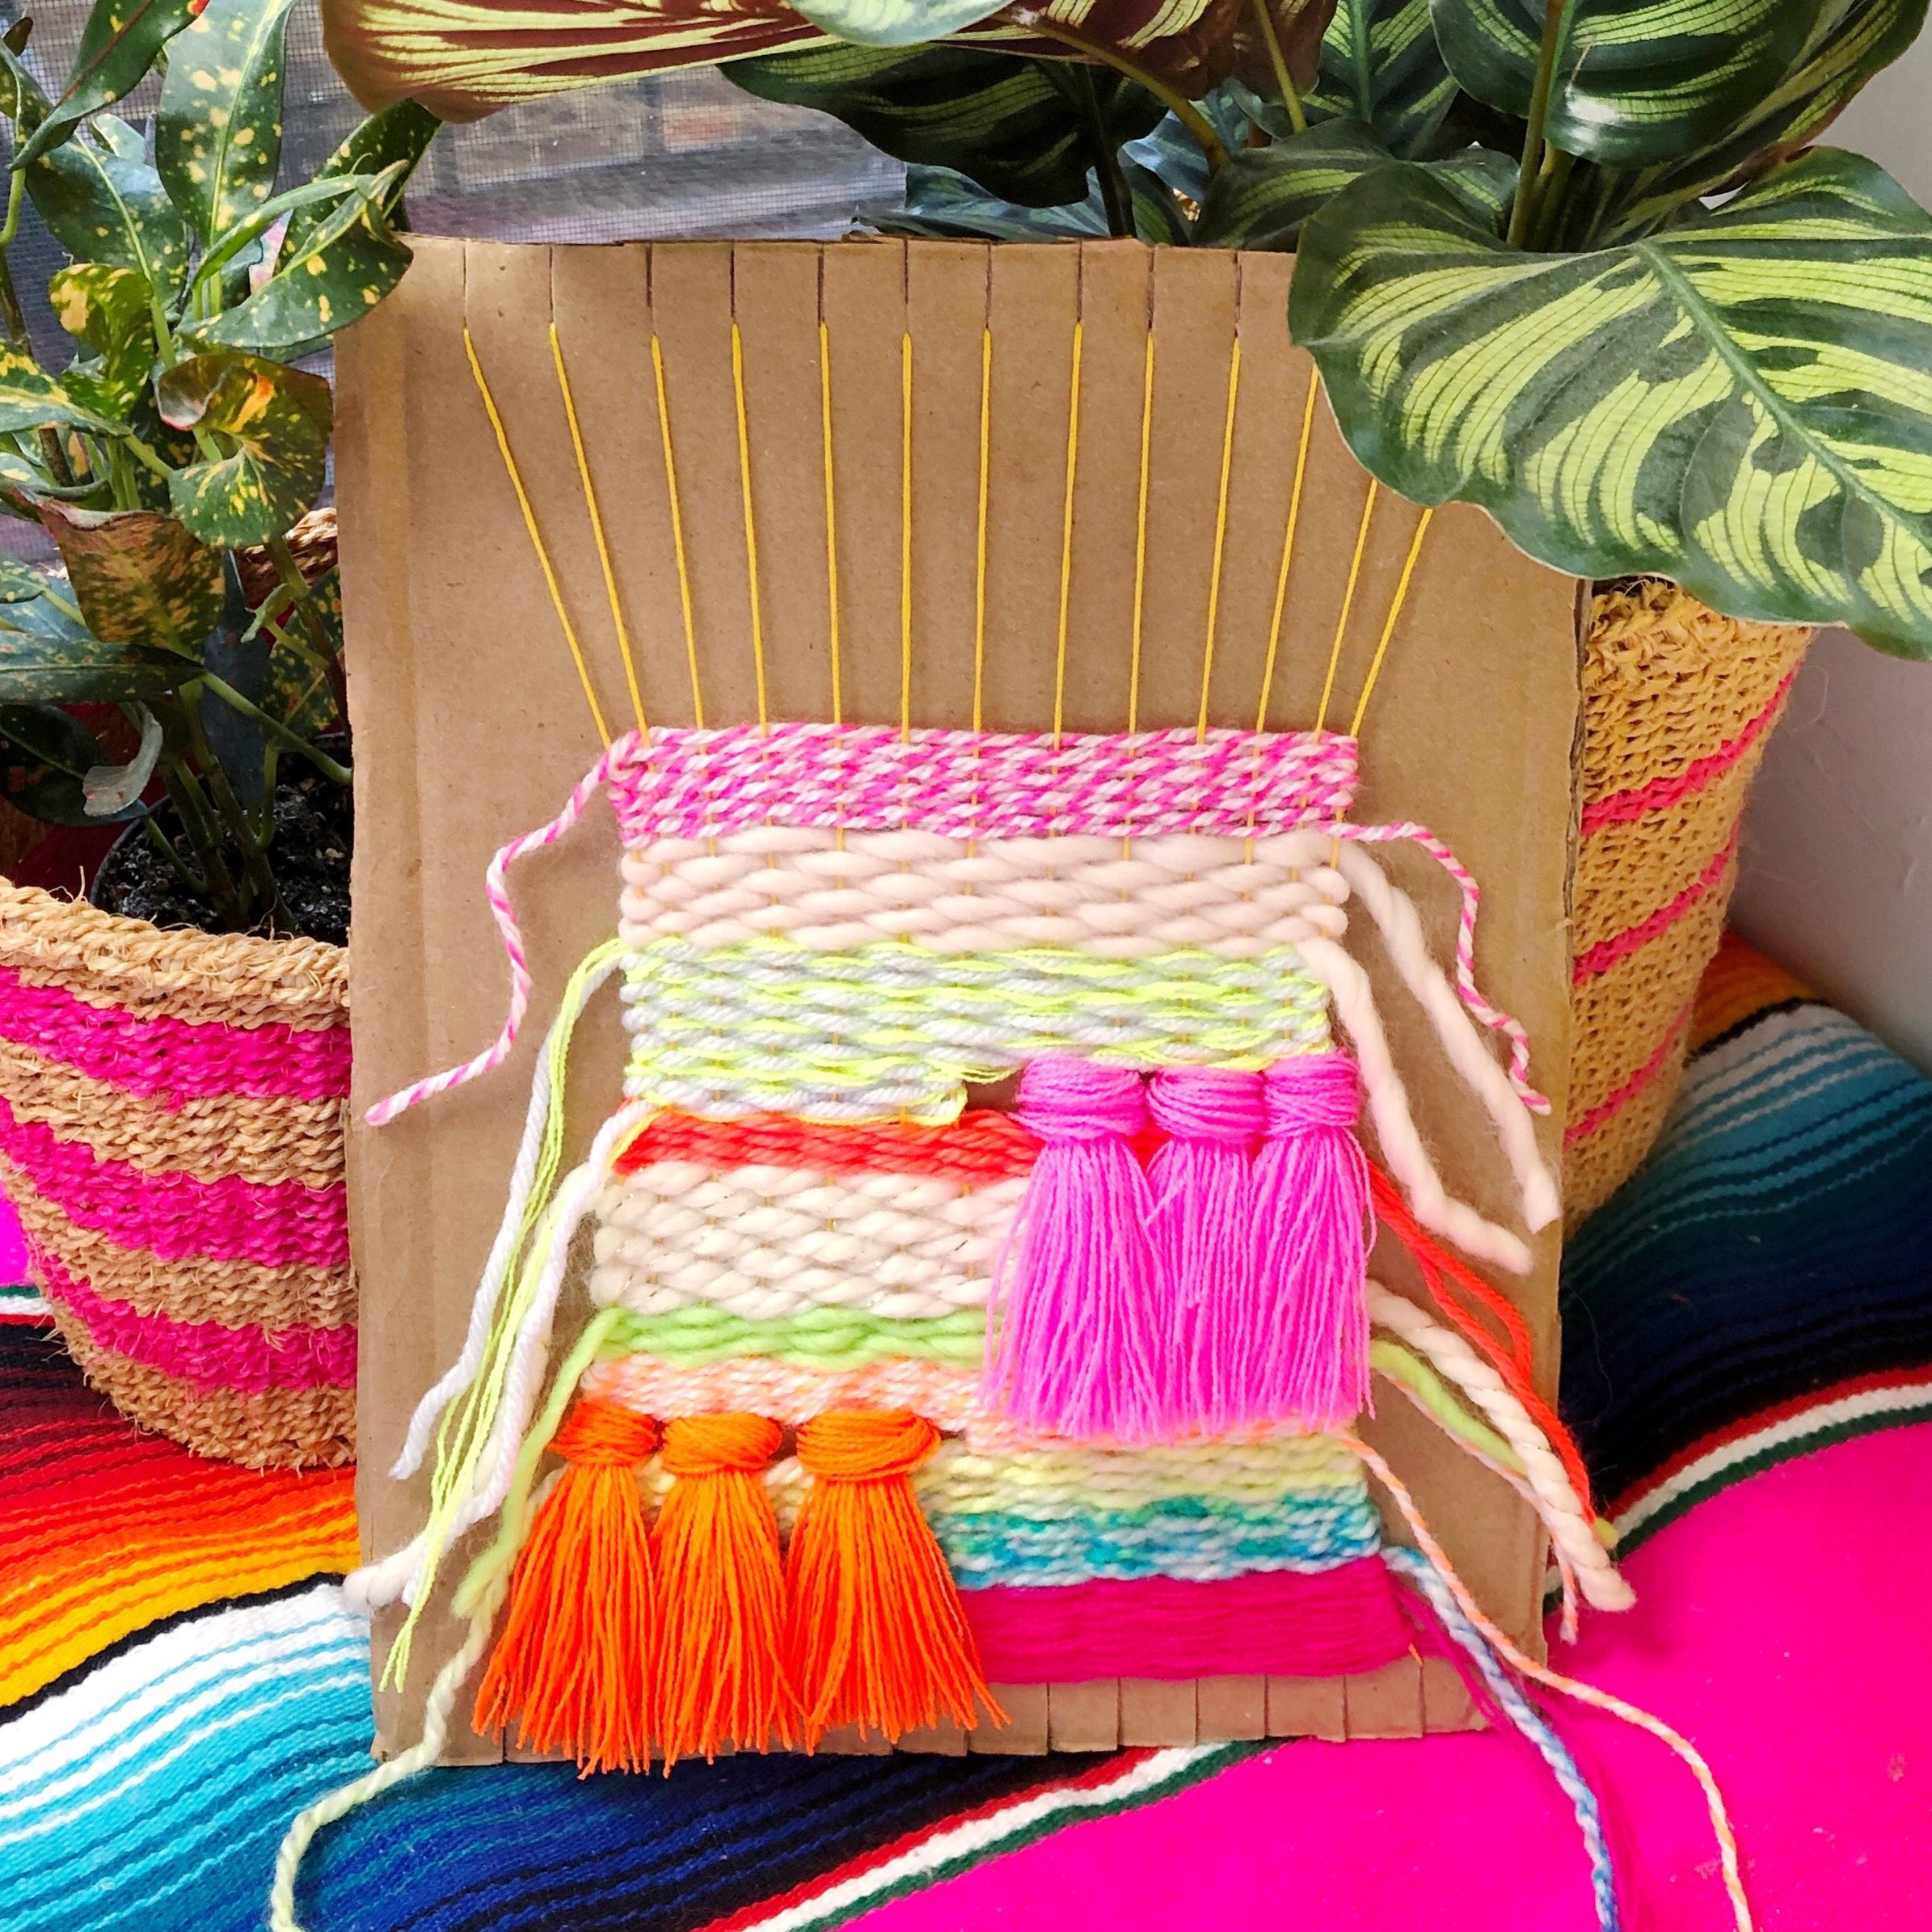 The Neon Tea Party - At Home - Cardboard Loom Weaving